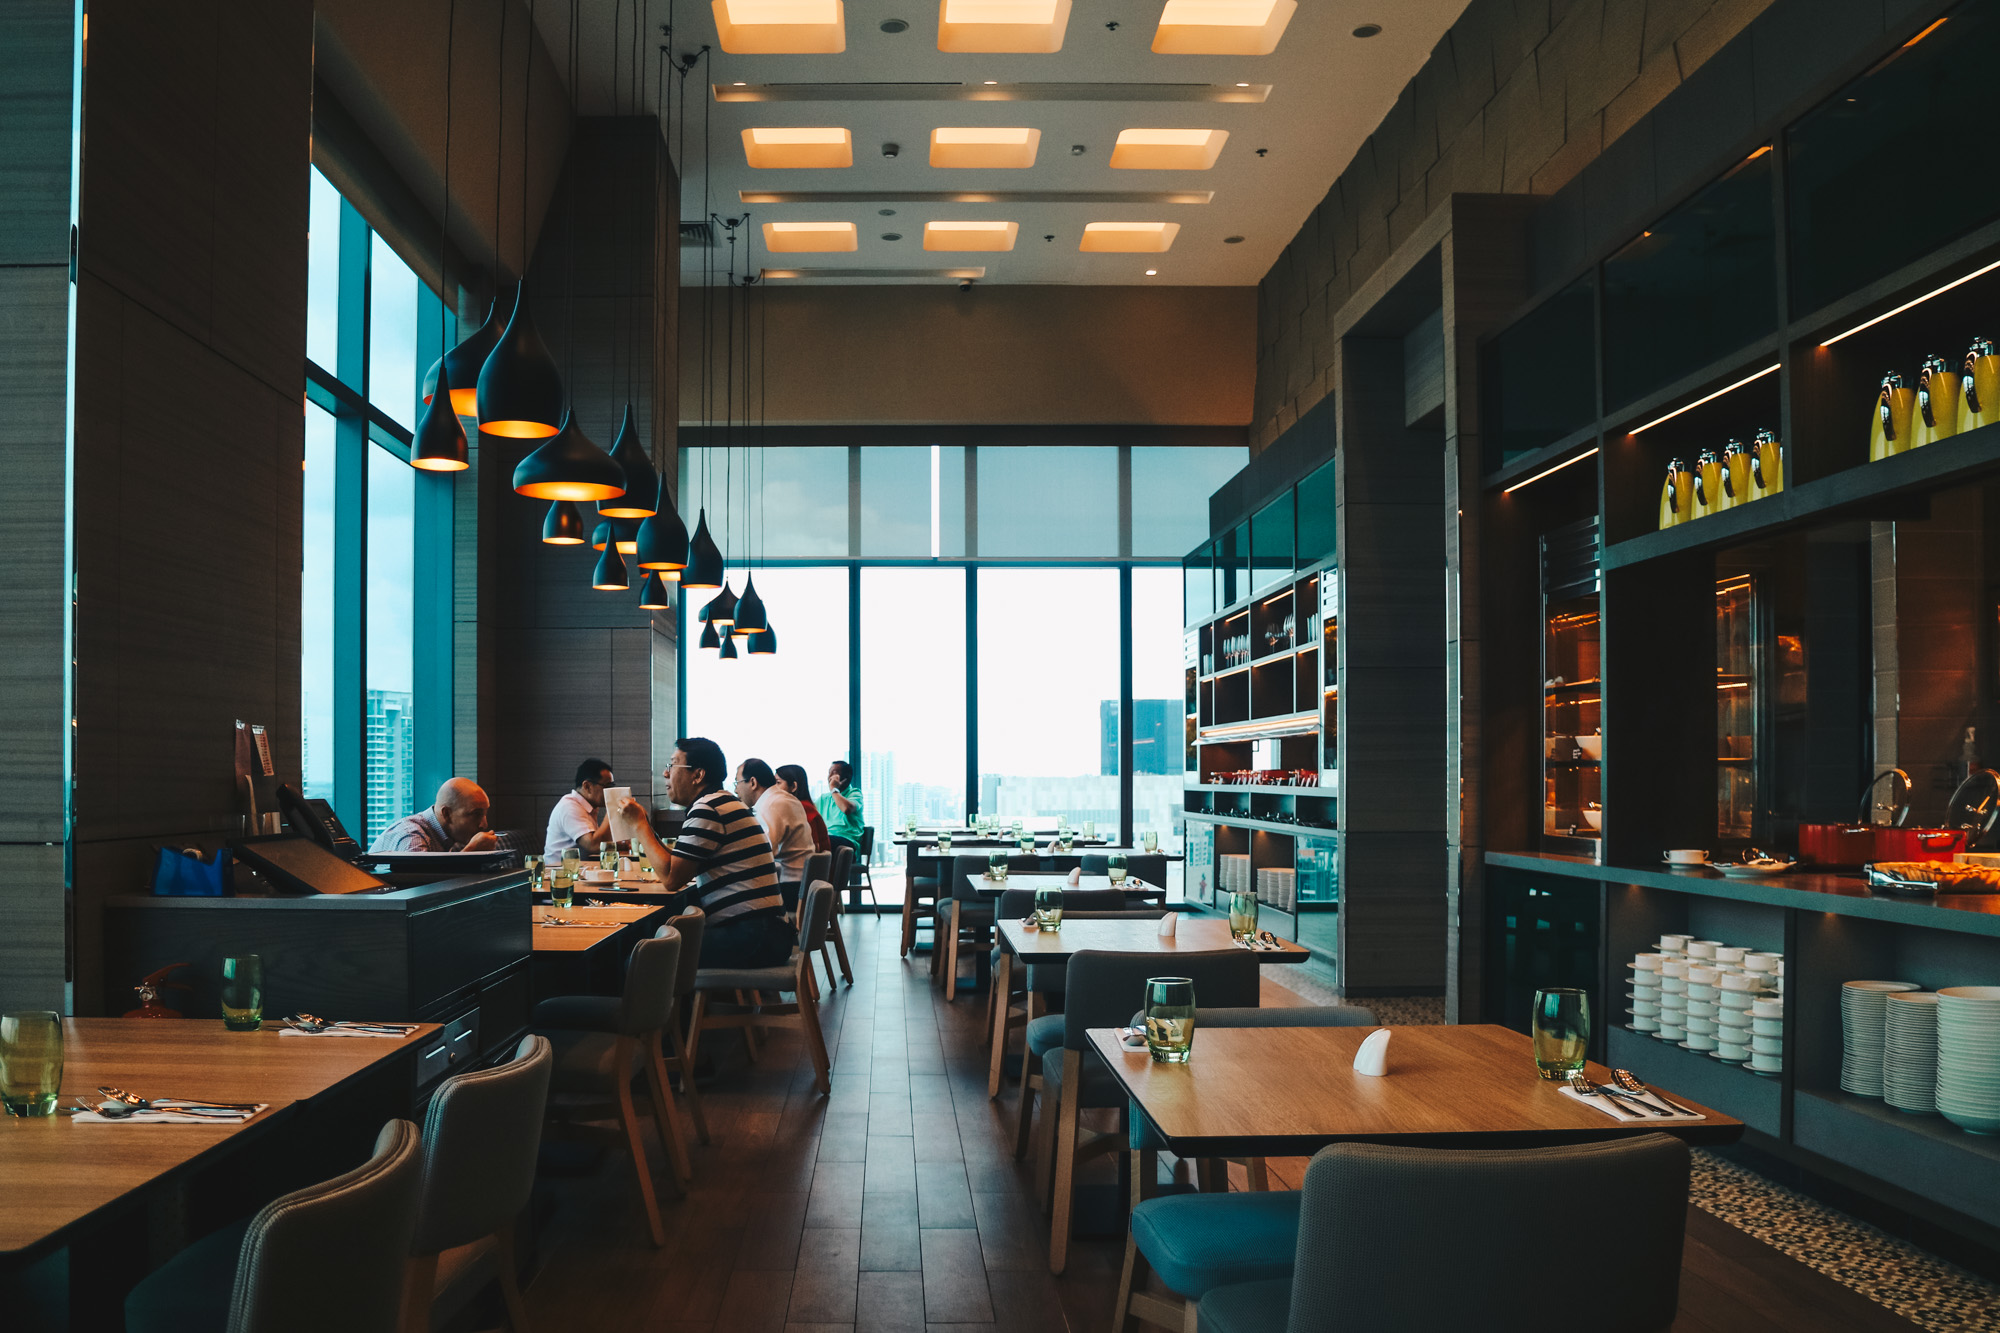 Sky 22 at Courtyard by Marriott - Dining with a Skyline View